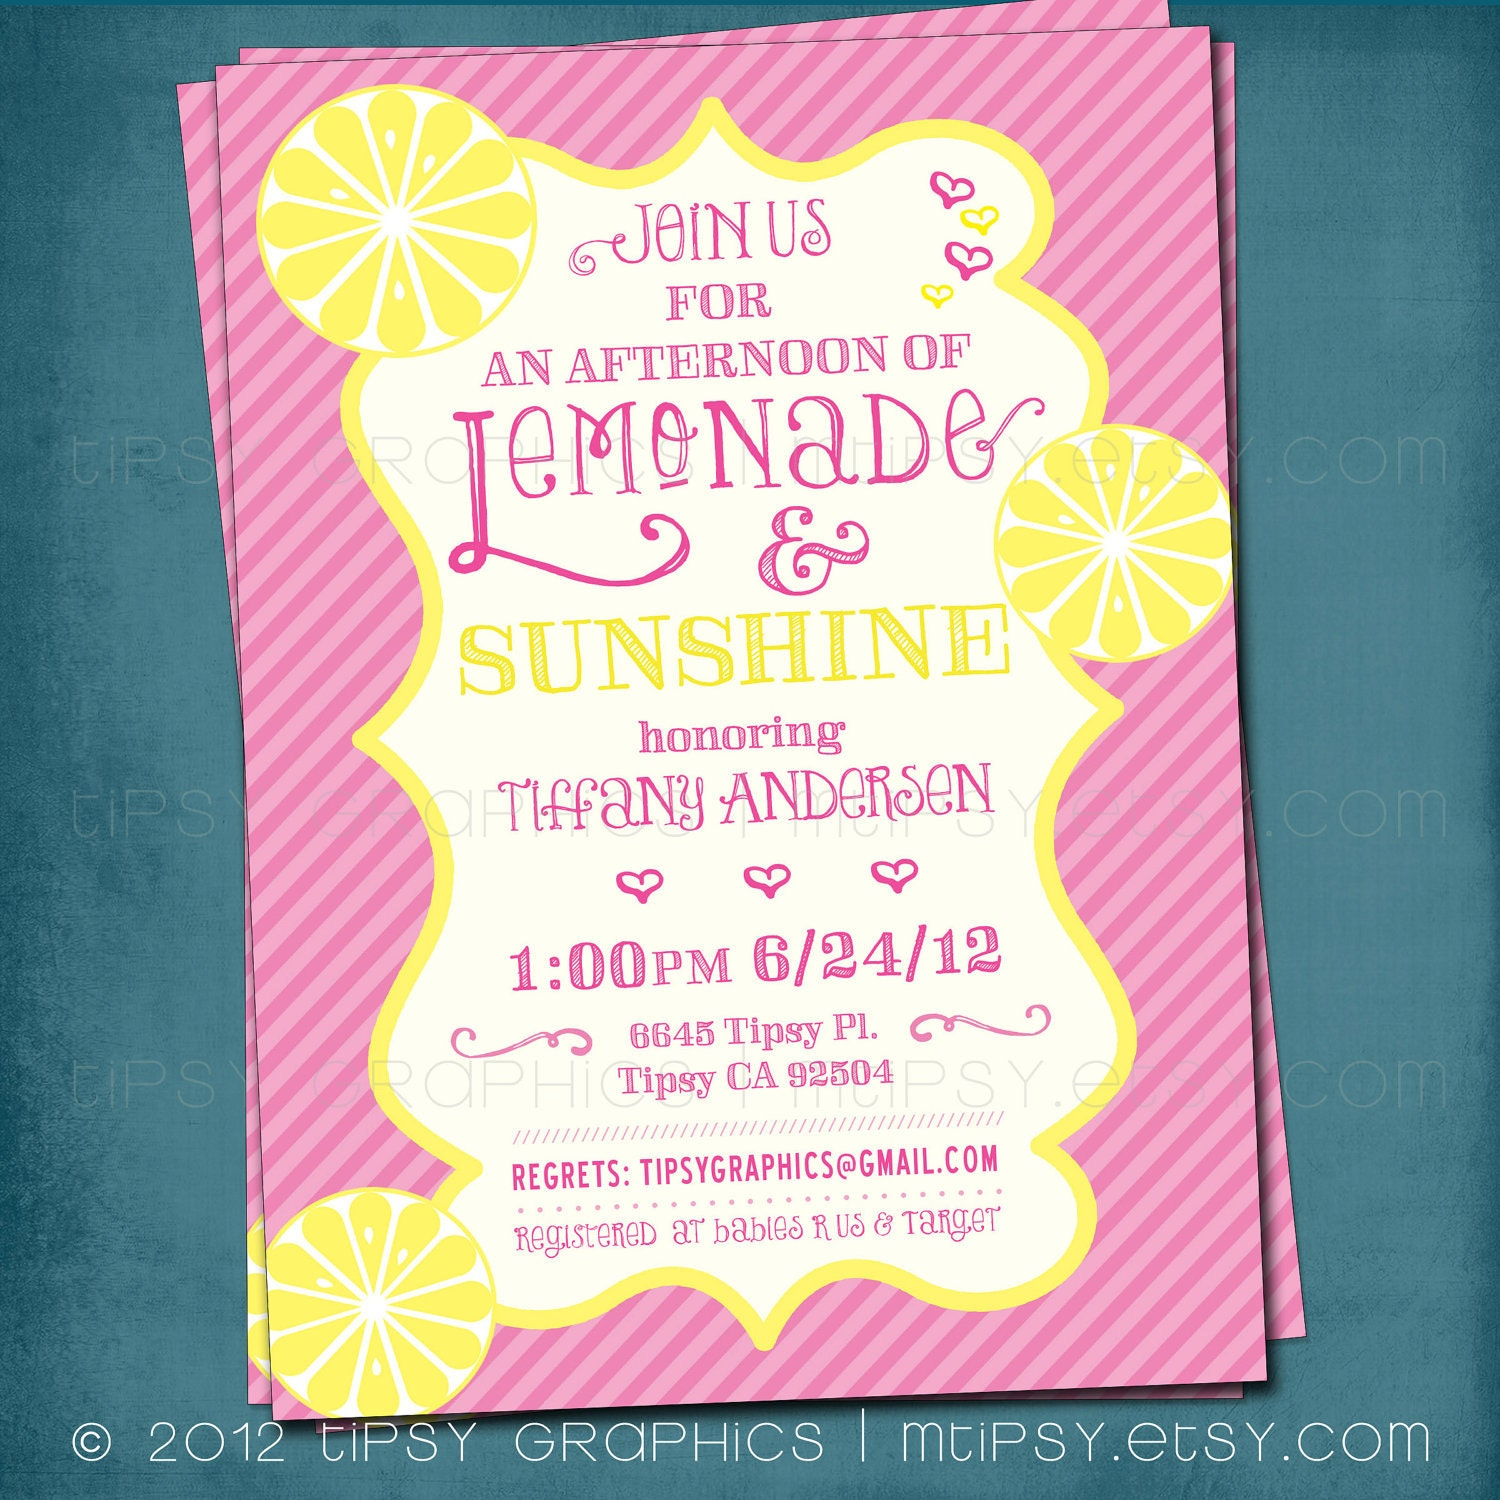 Create A Baby Shower Invitation is nice invitation example